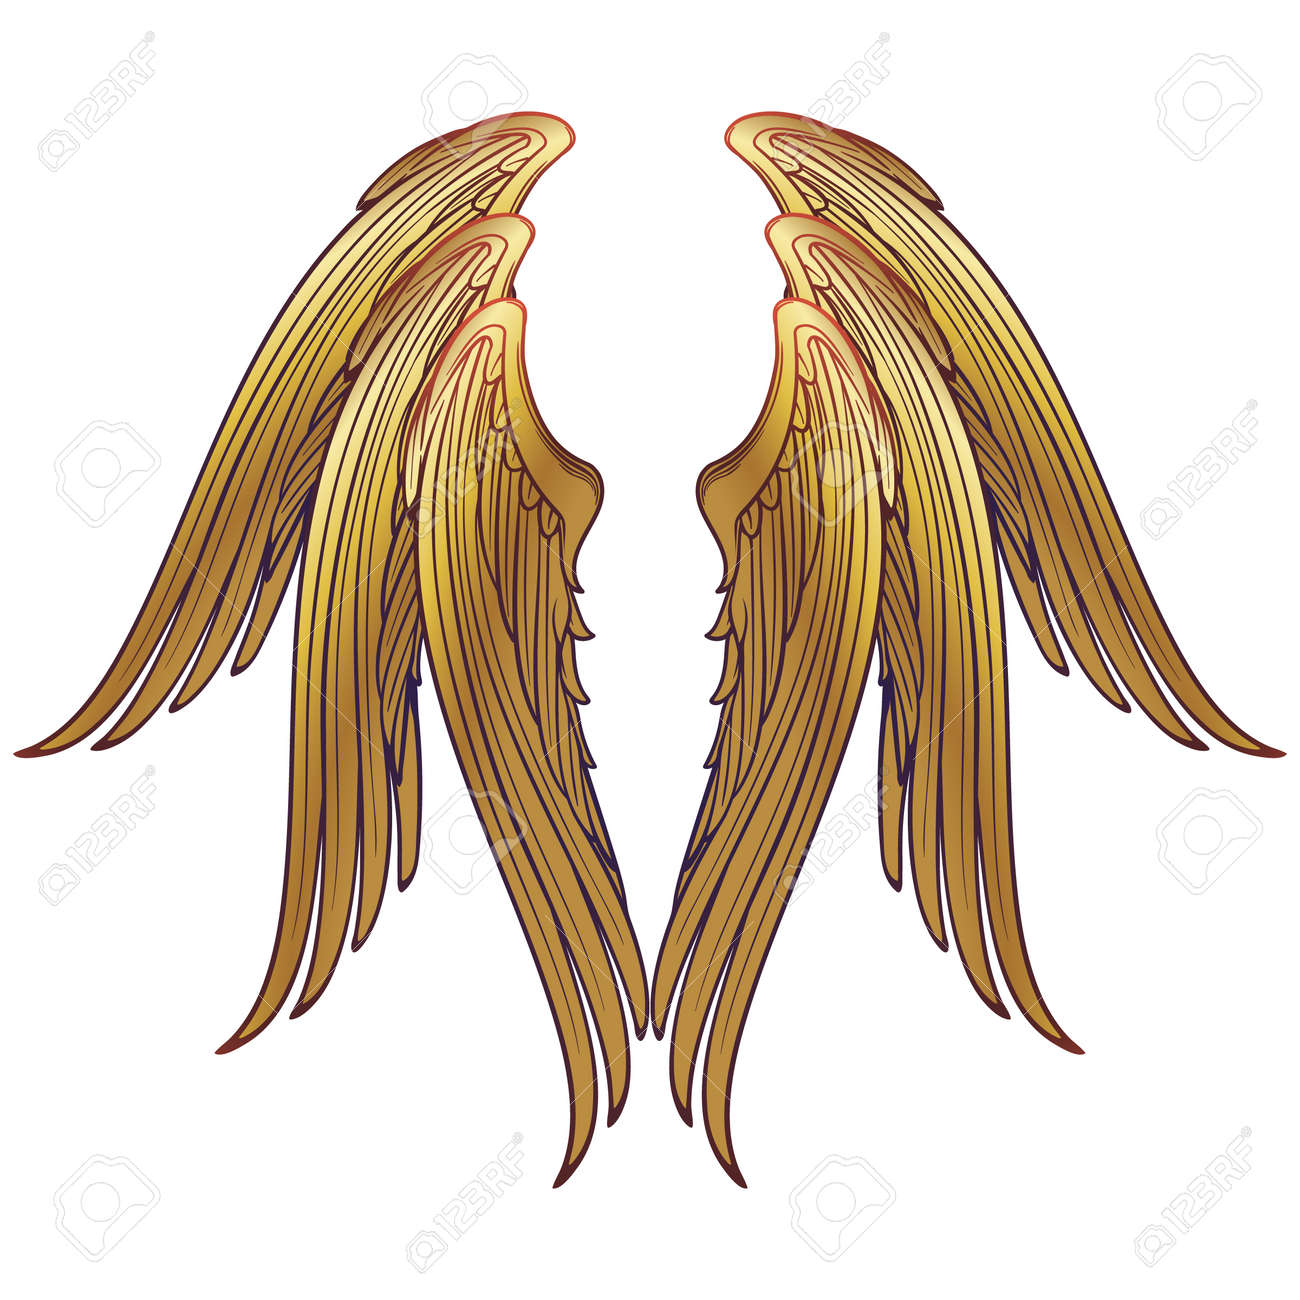 6 winged seraphim wings template. Medieval gothic style concept art. Design element. Brightly colored drawing. Medieval Manuscript pallette. EPS10 vector - 121510002